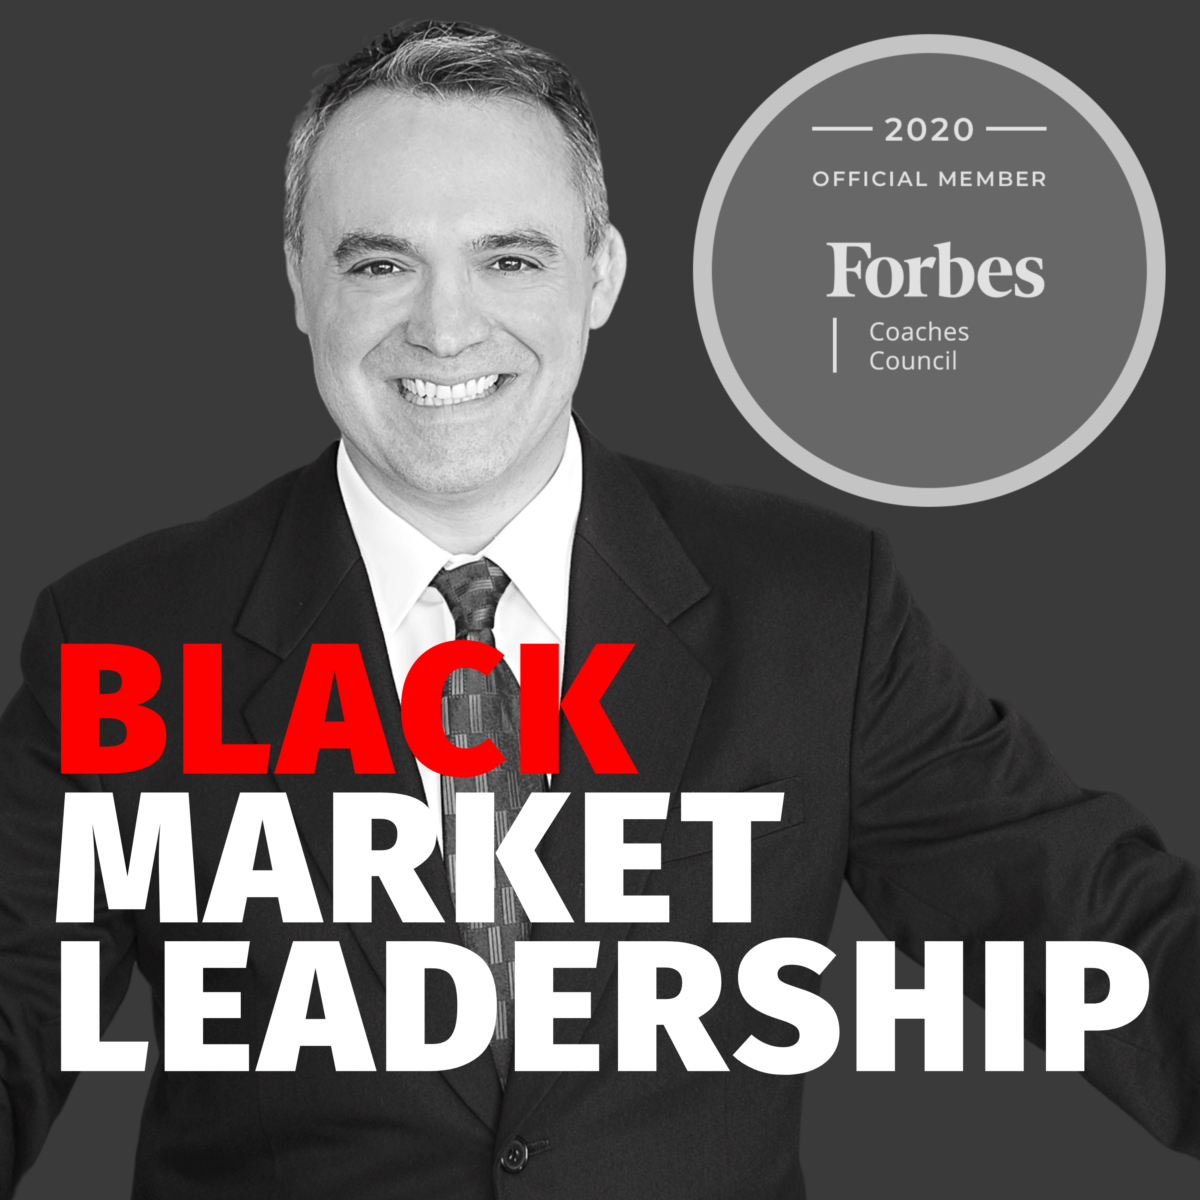 https://podcasts.apple.com/us/podcast/black-market-leadership/id1523238553